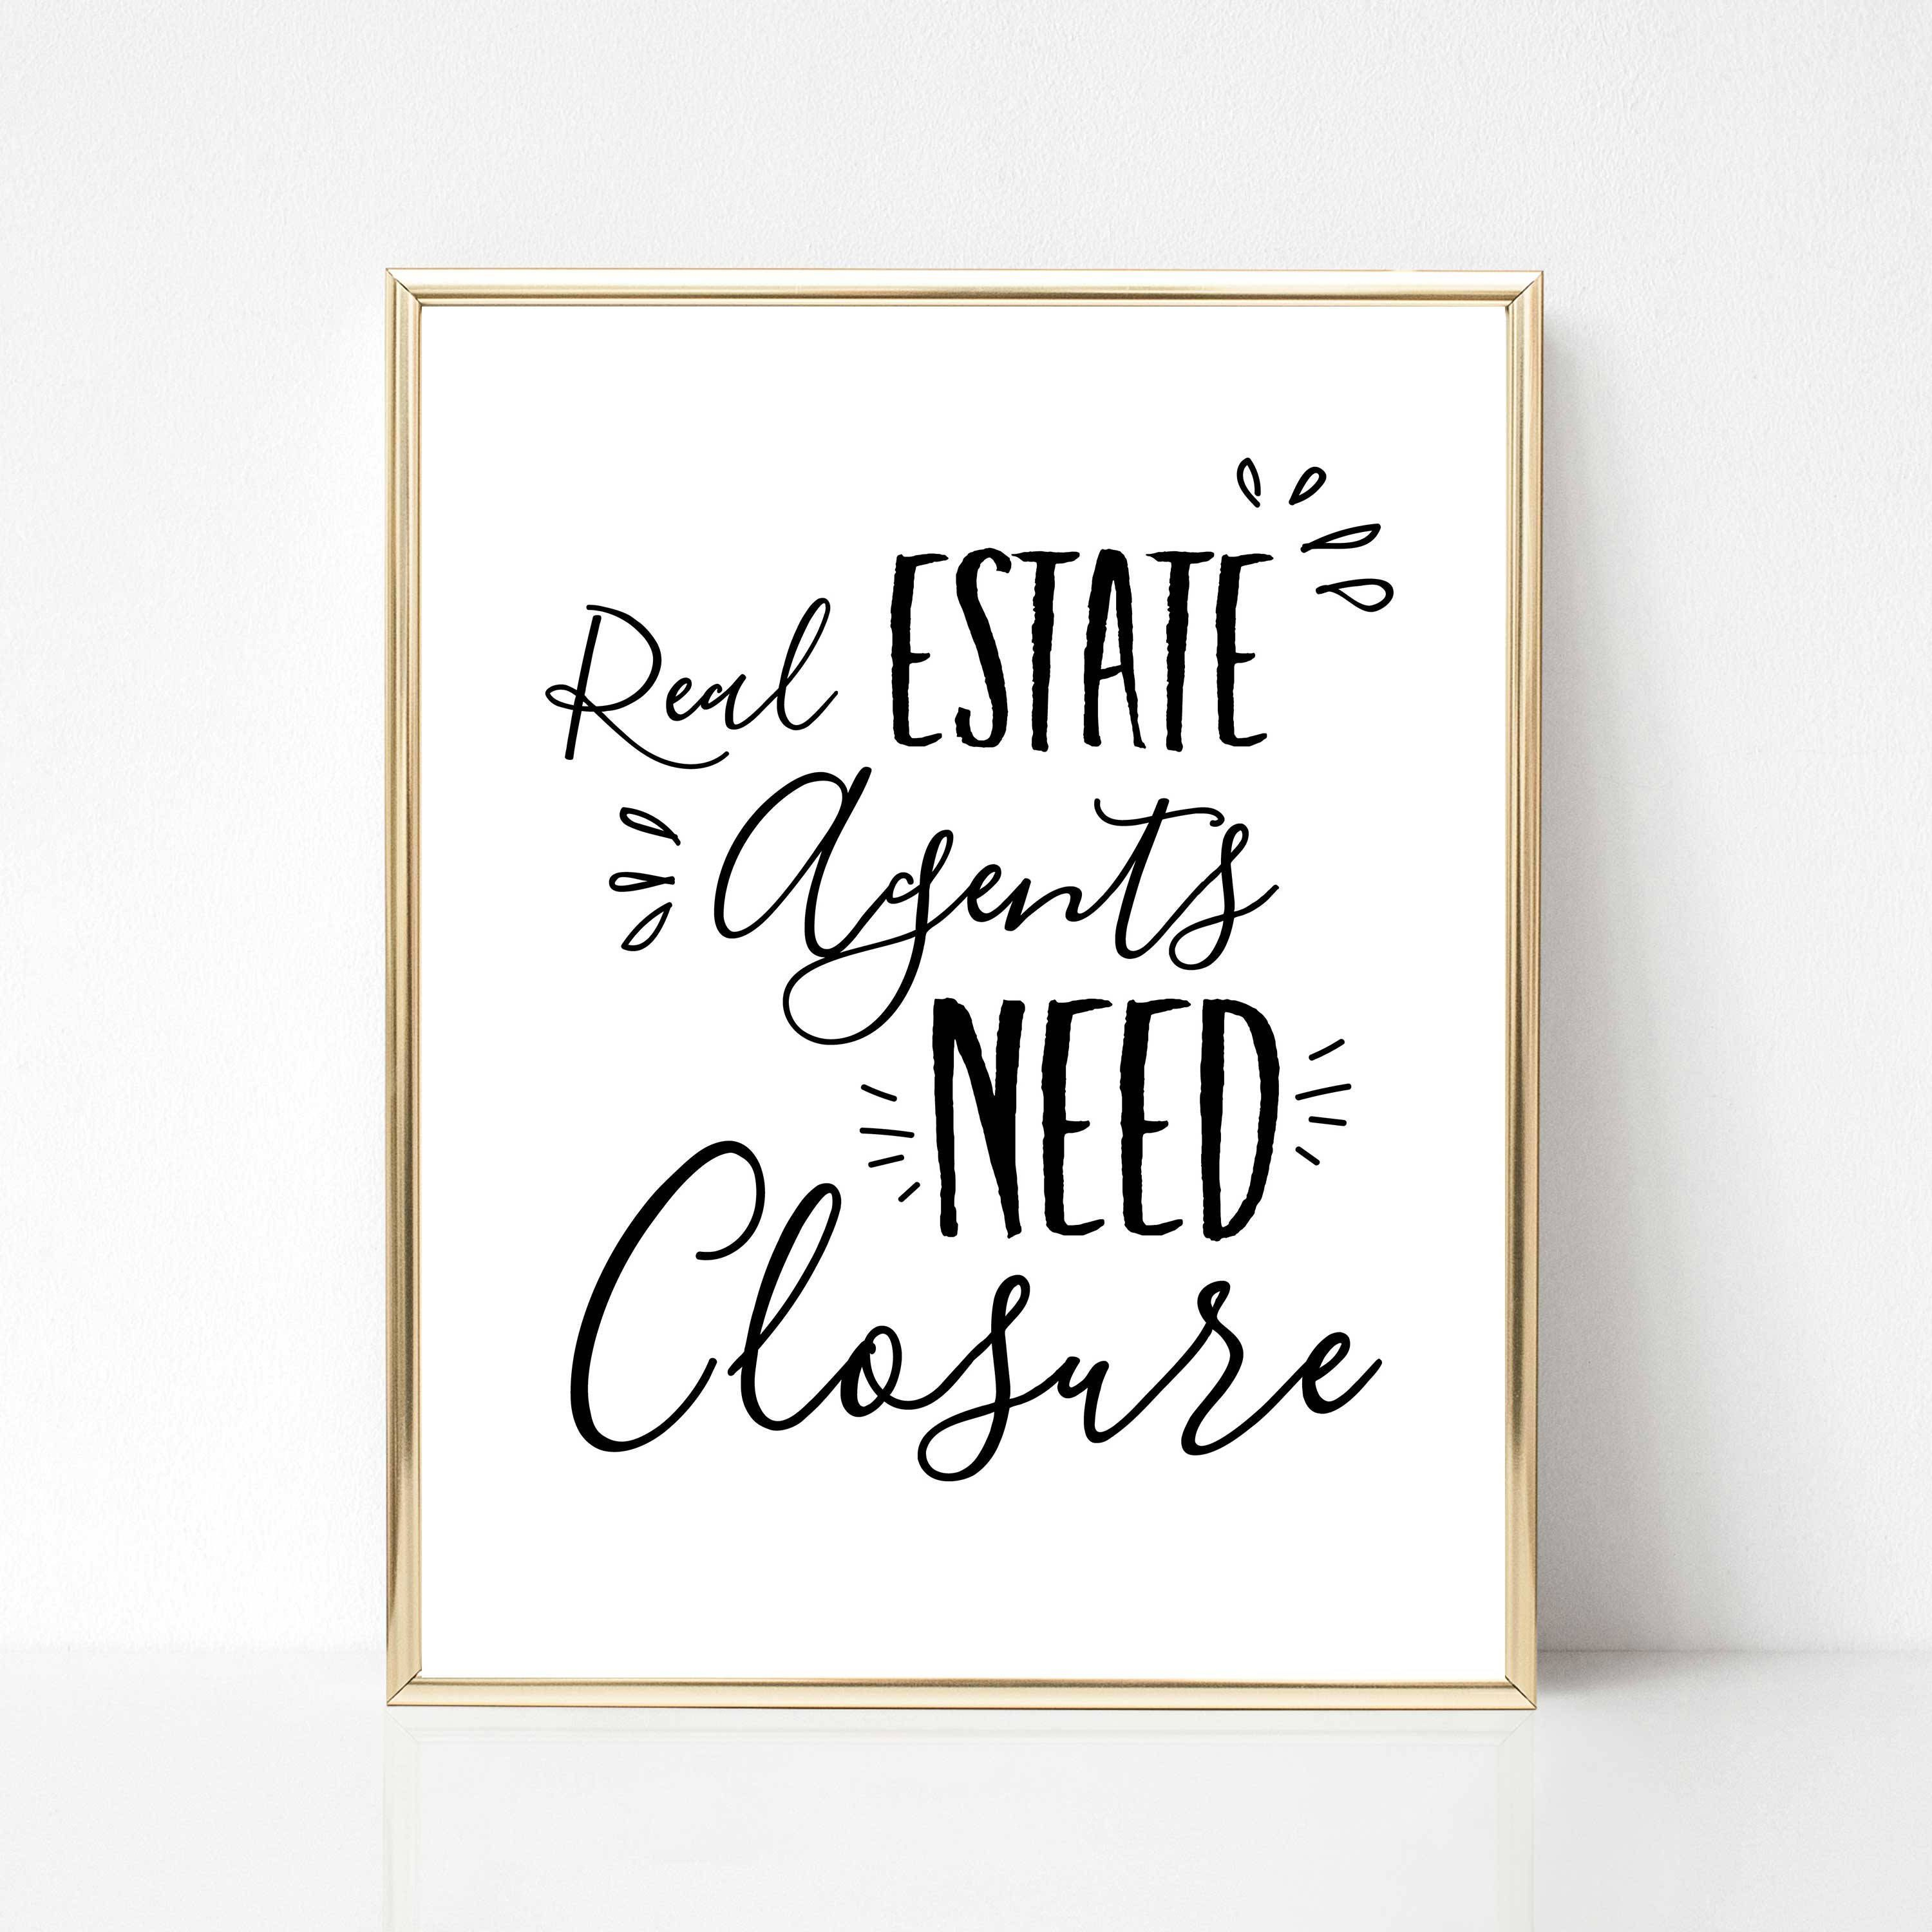 Real Estate Agents Need Closure Printable Realtor Wall Art Realtor Office De Agents Art Closure Estate Real Estate Agent Home Buying Tips Real Estate